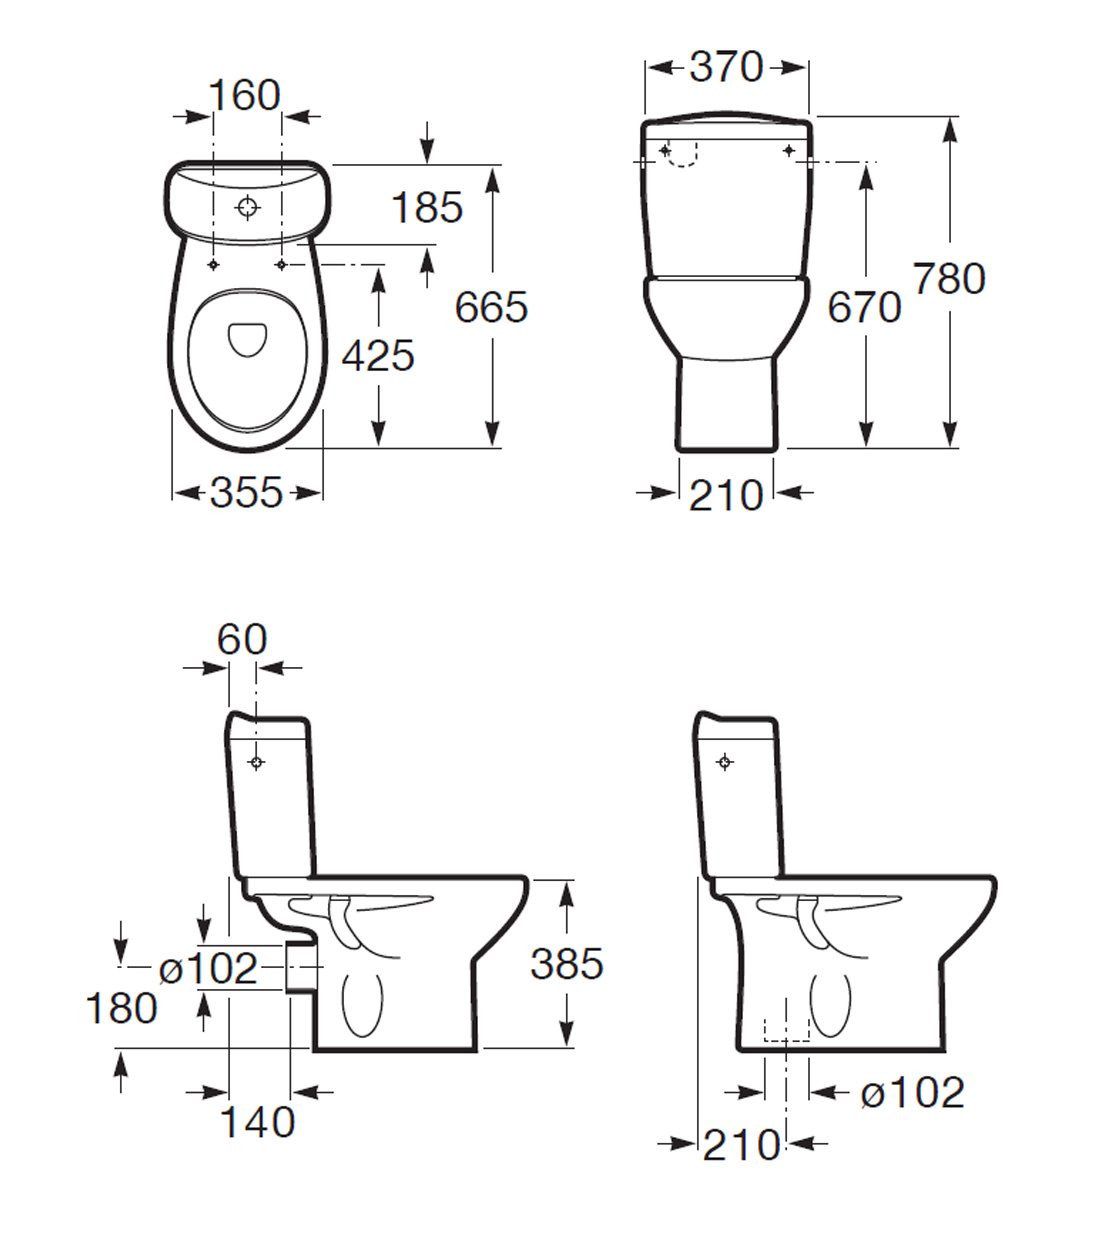 dual flush toilet cistern diagram 12 volt boat wiring roca laura eco close coupled wc pan including